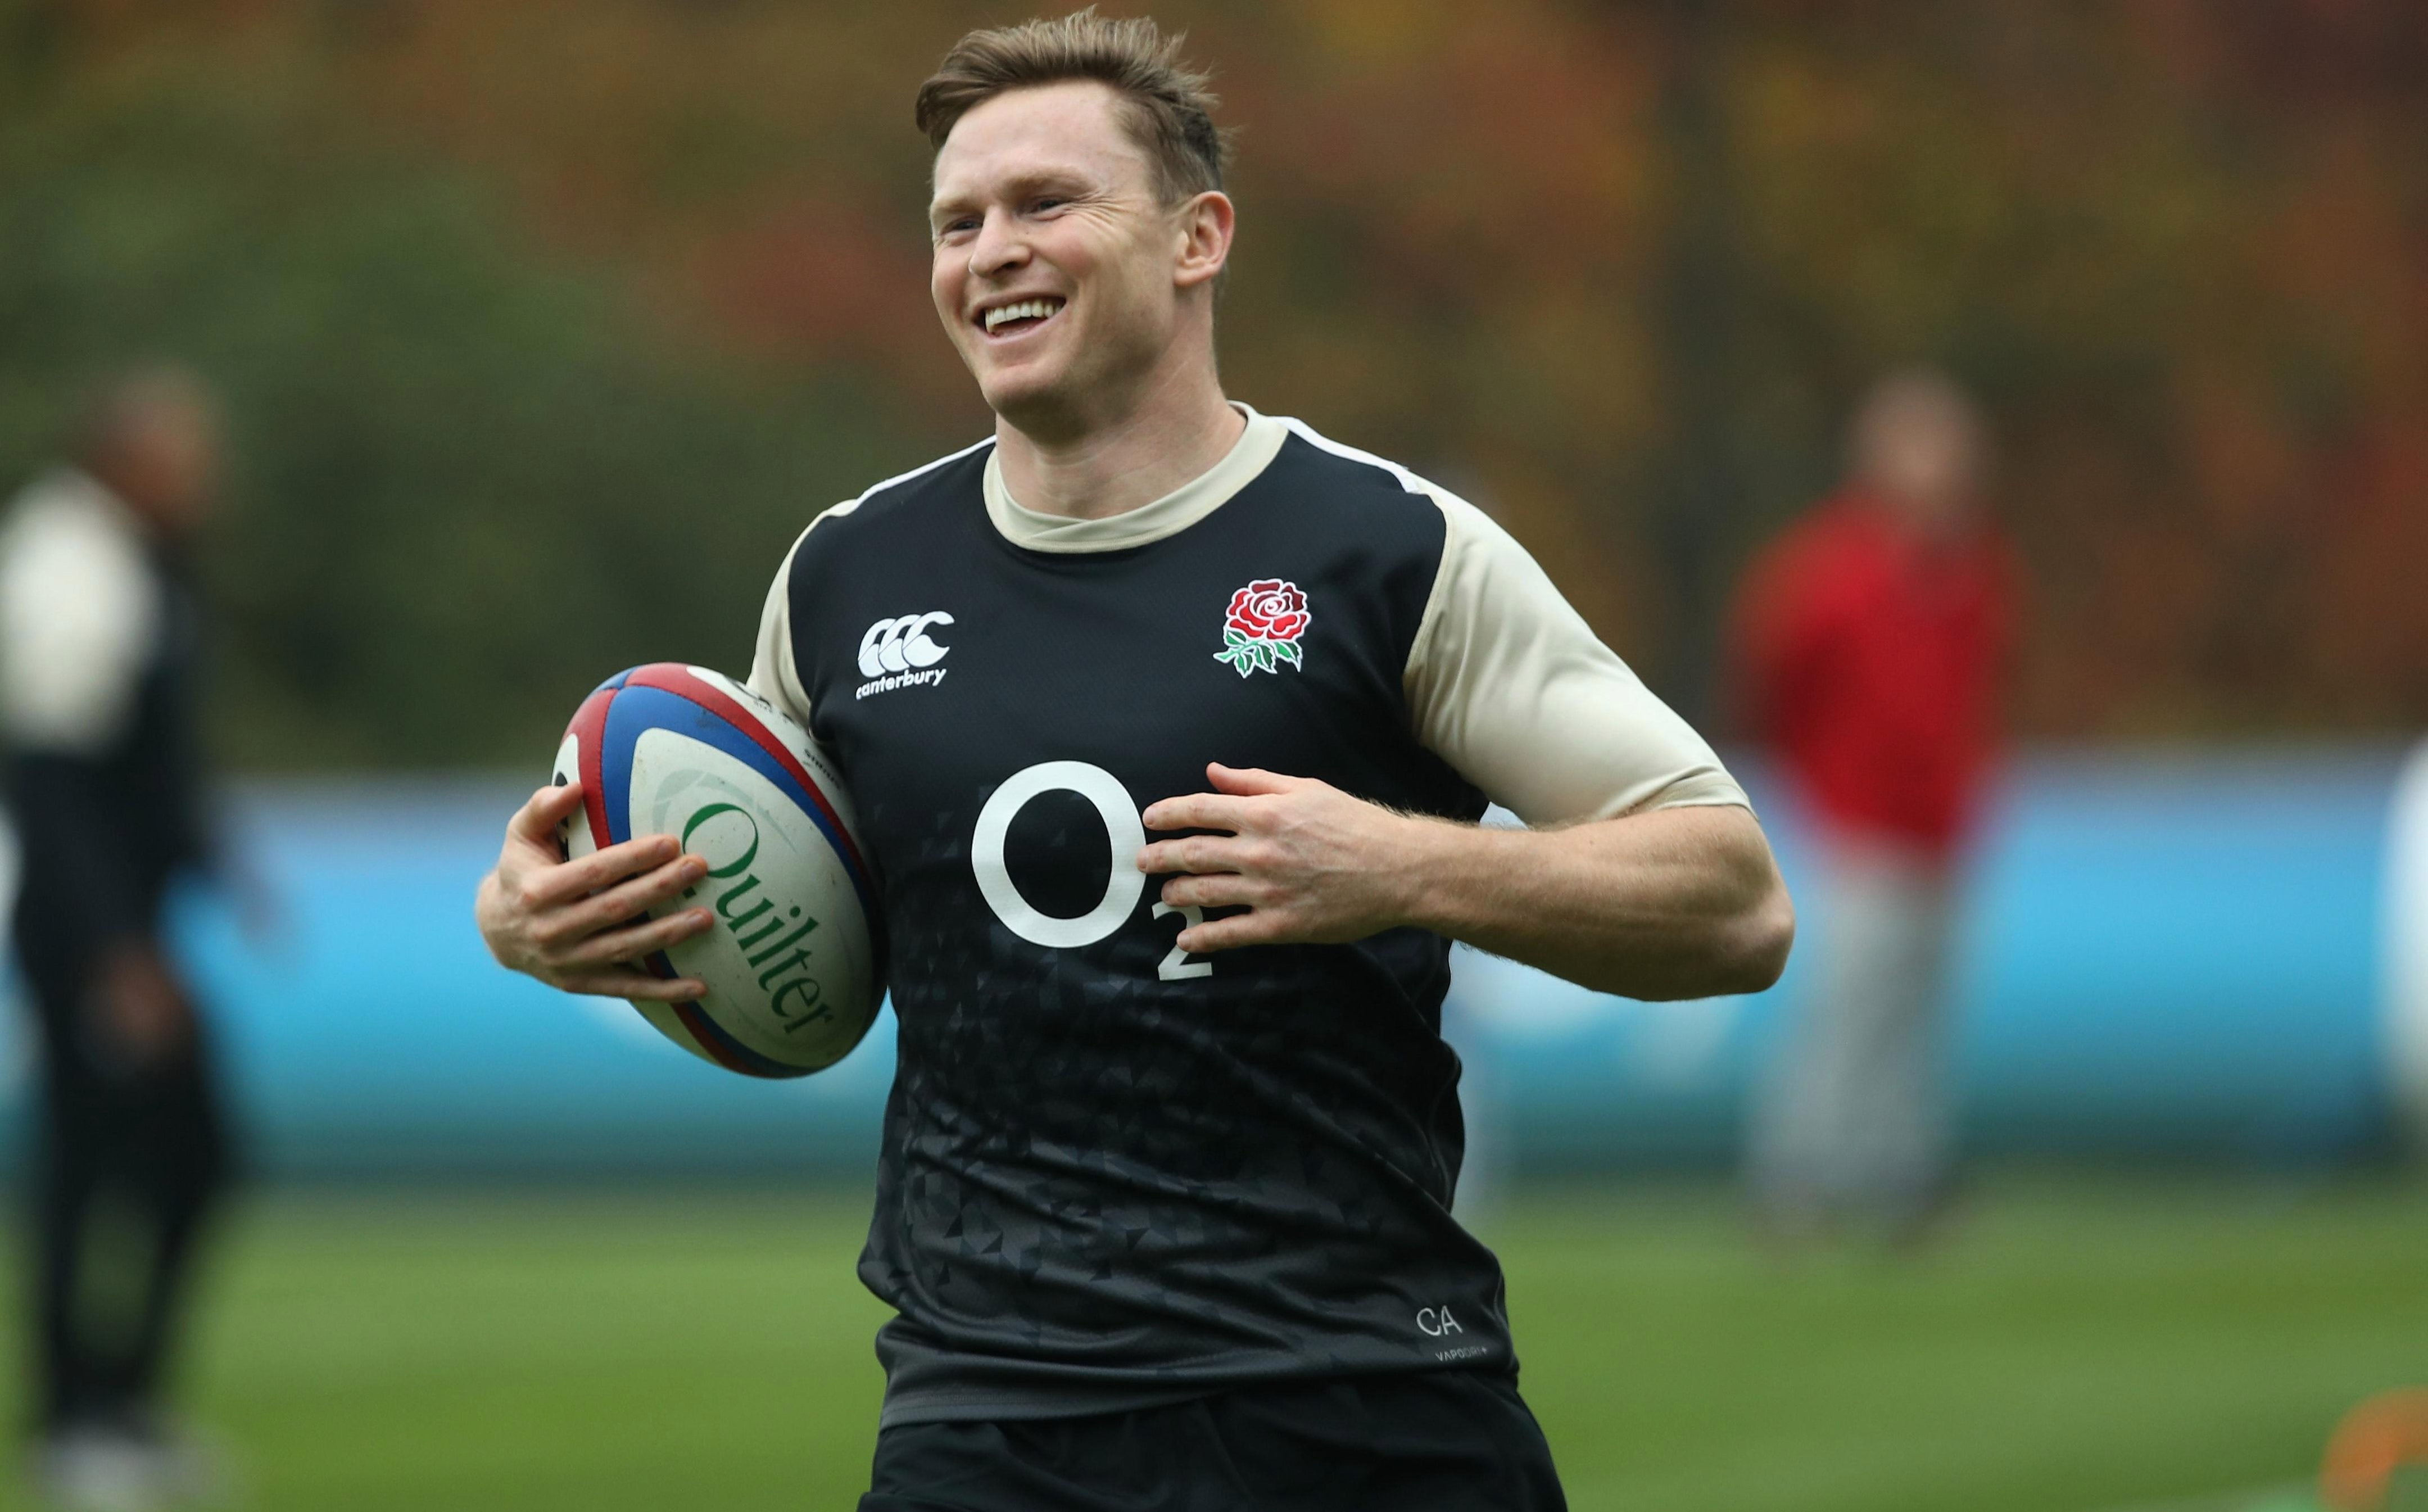 Chris Ashton reckons the All Blacks have no idea who they are